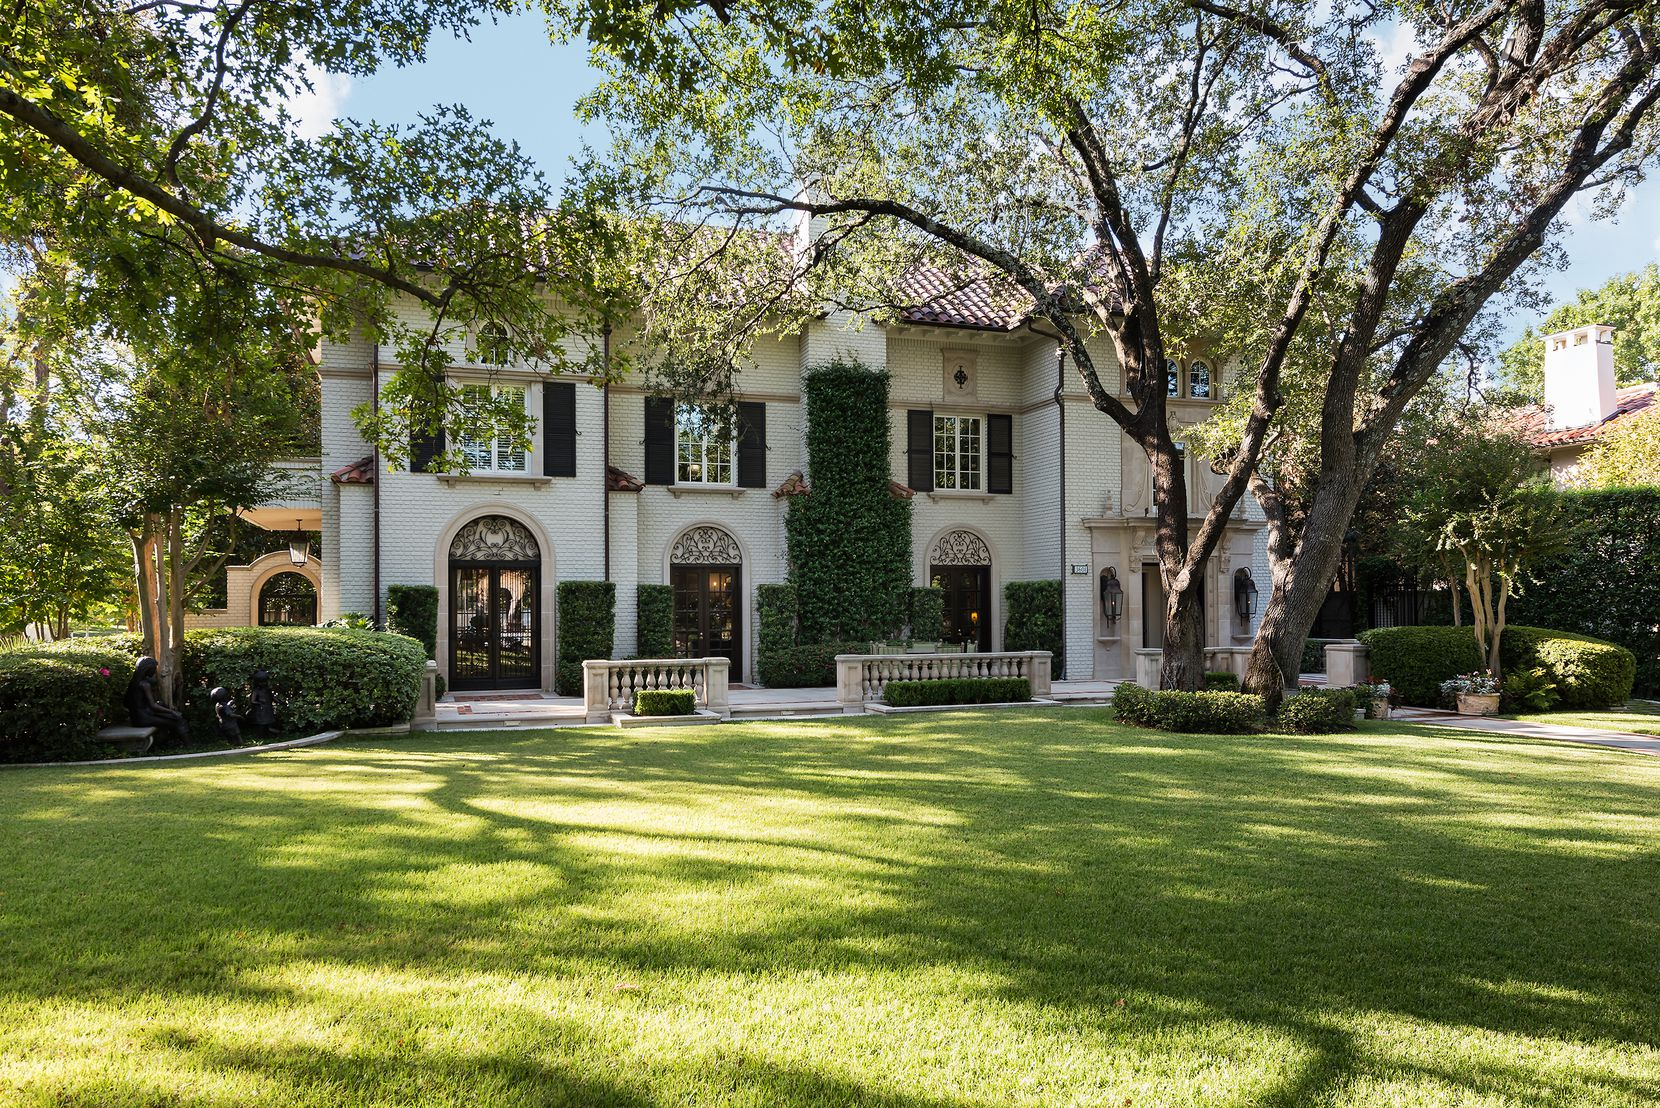 Take a look at the home at 3601 Beverly Drive in Dallas, TX.